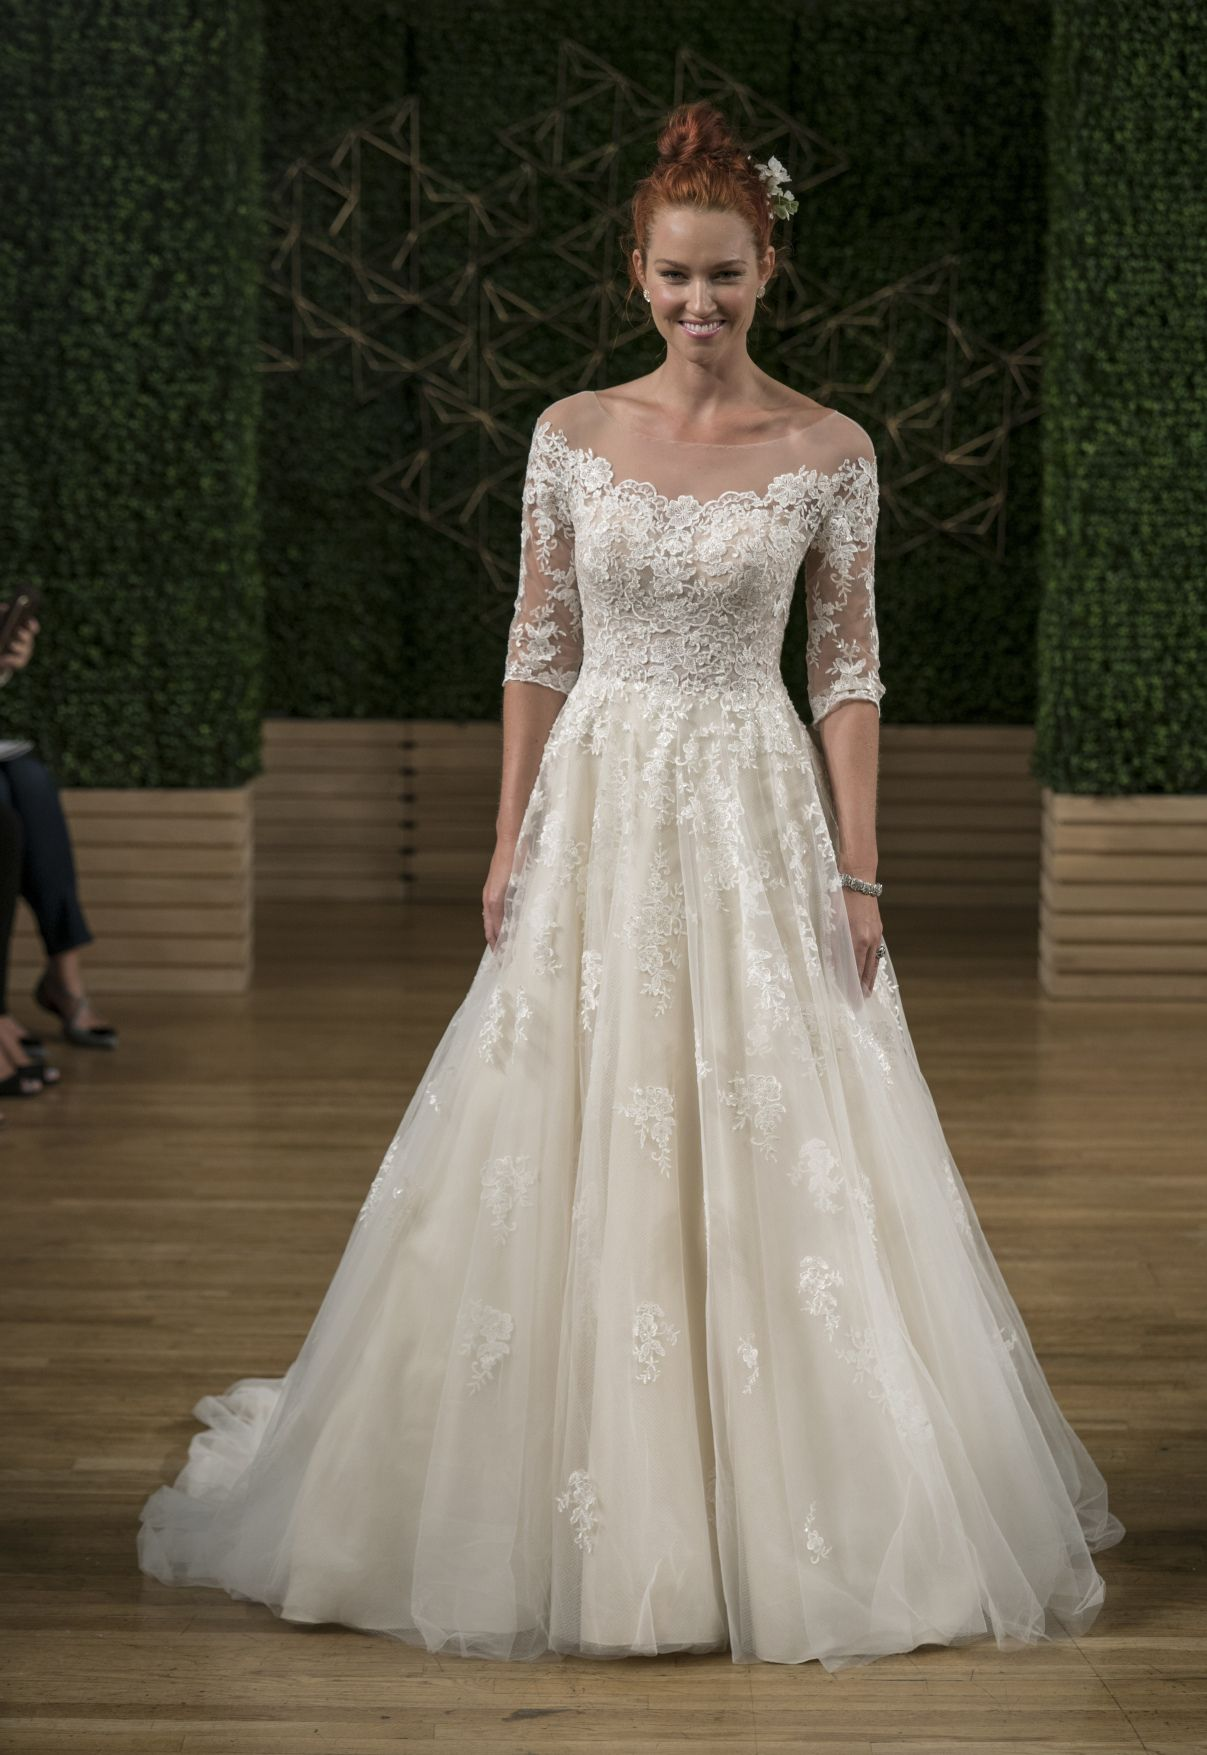 99+ Lace Aline Wedding Dress - Cute Dresses for A Wedding Check more ...